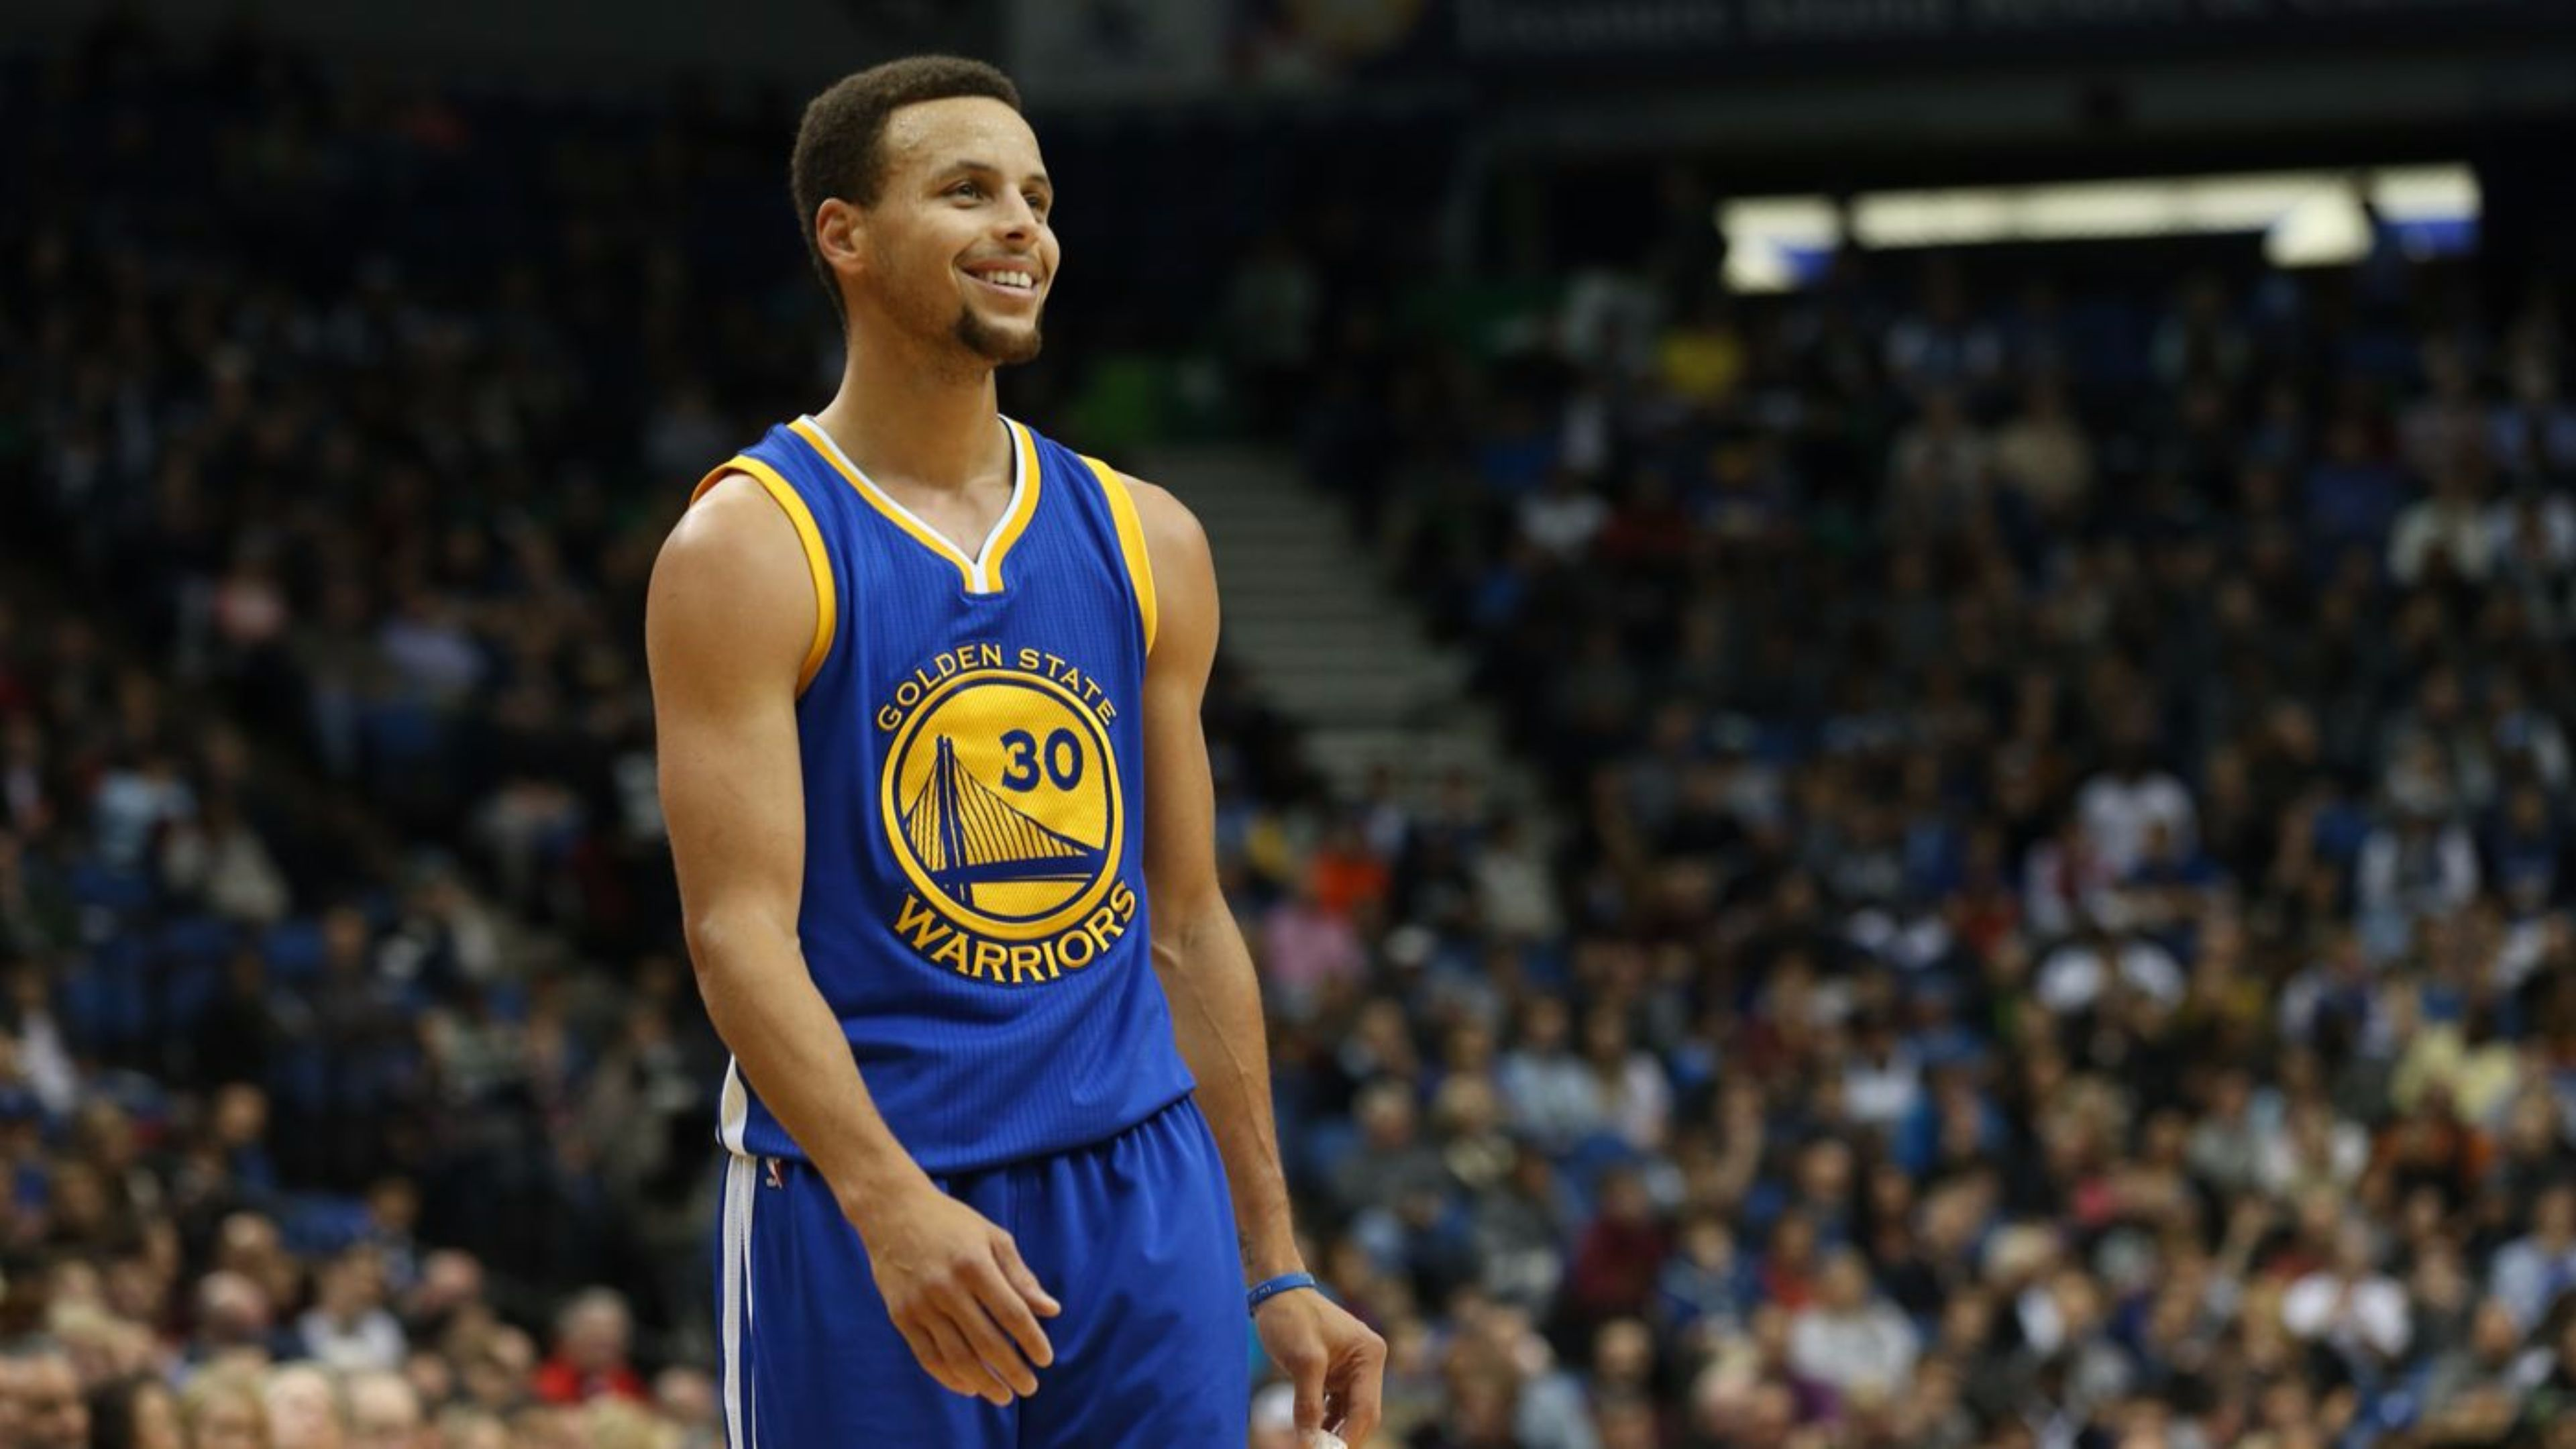 wardell stephen curry basket ball player wallpapers